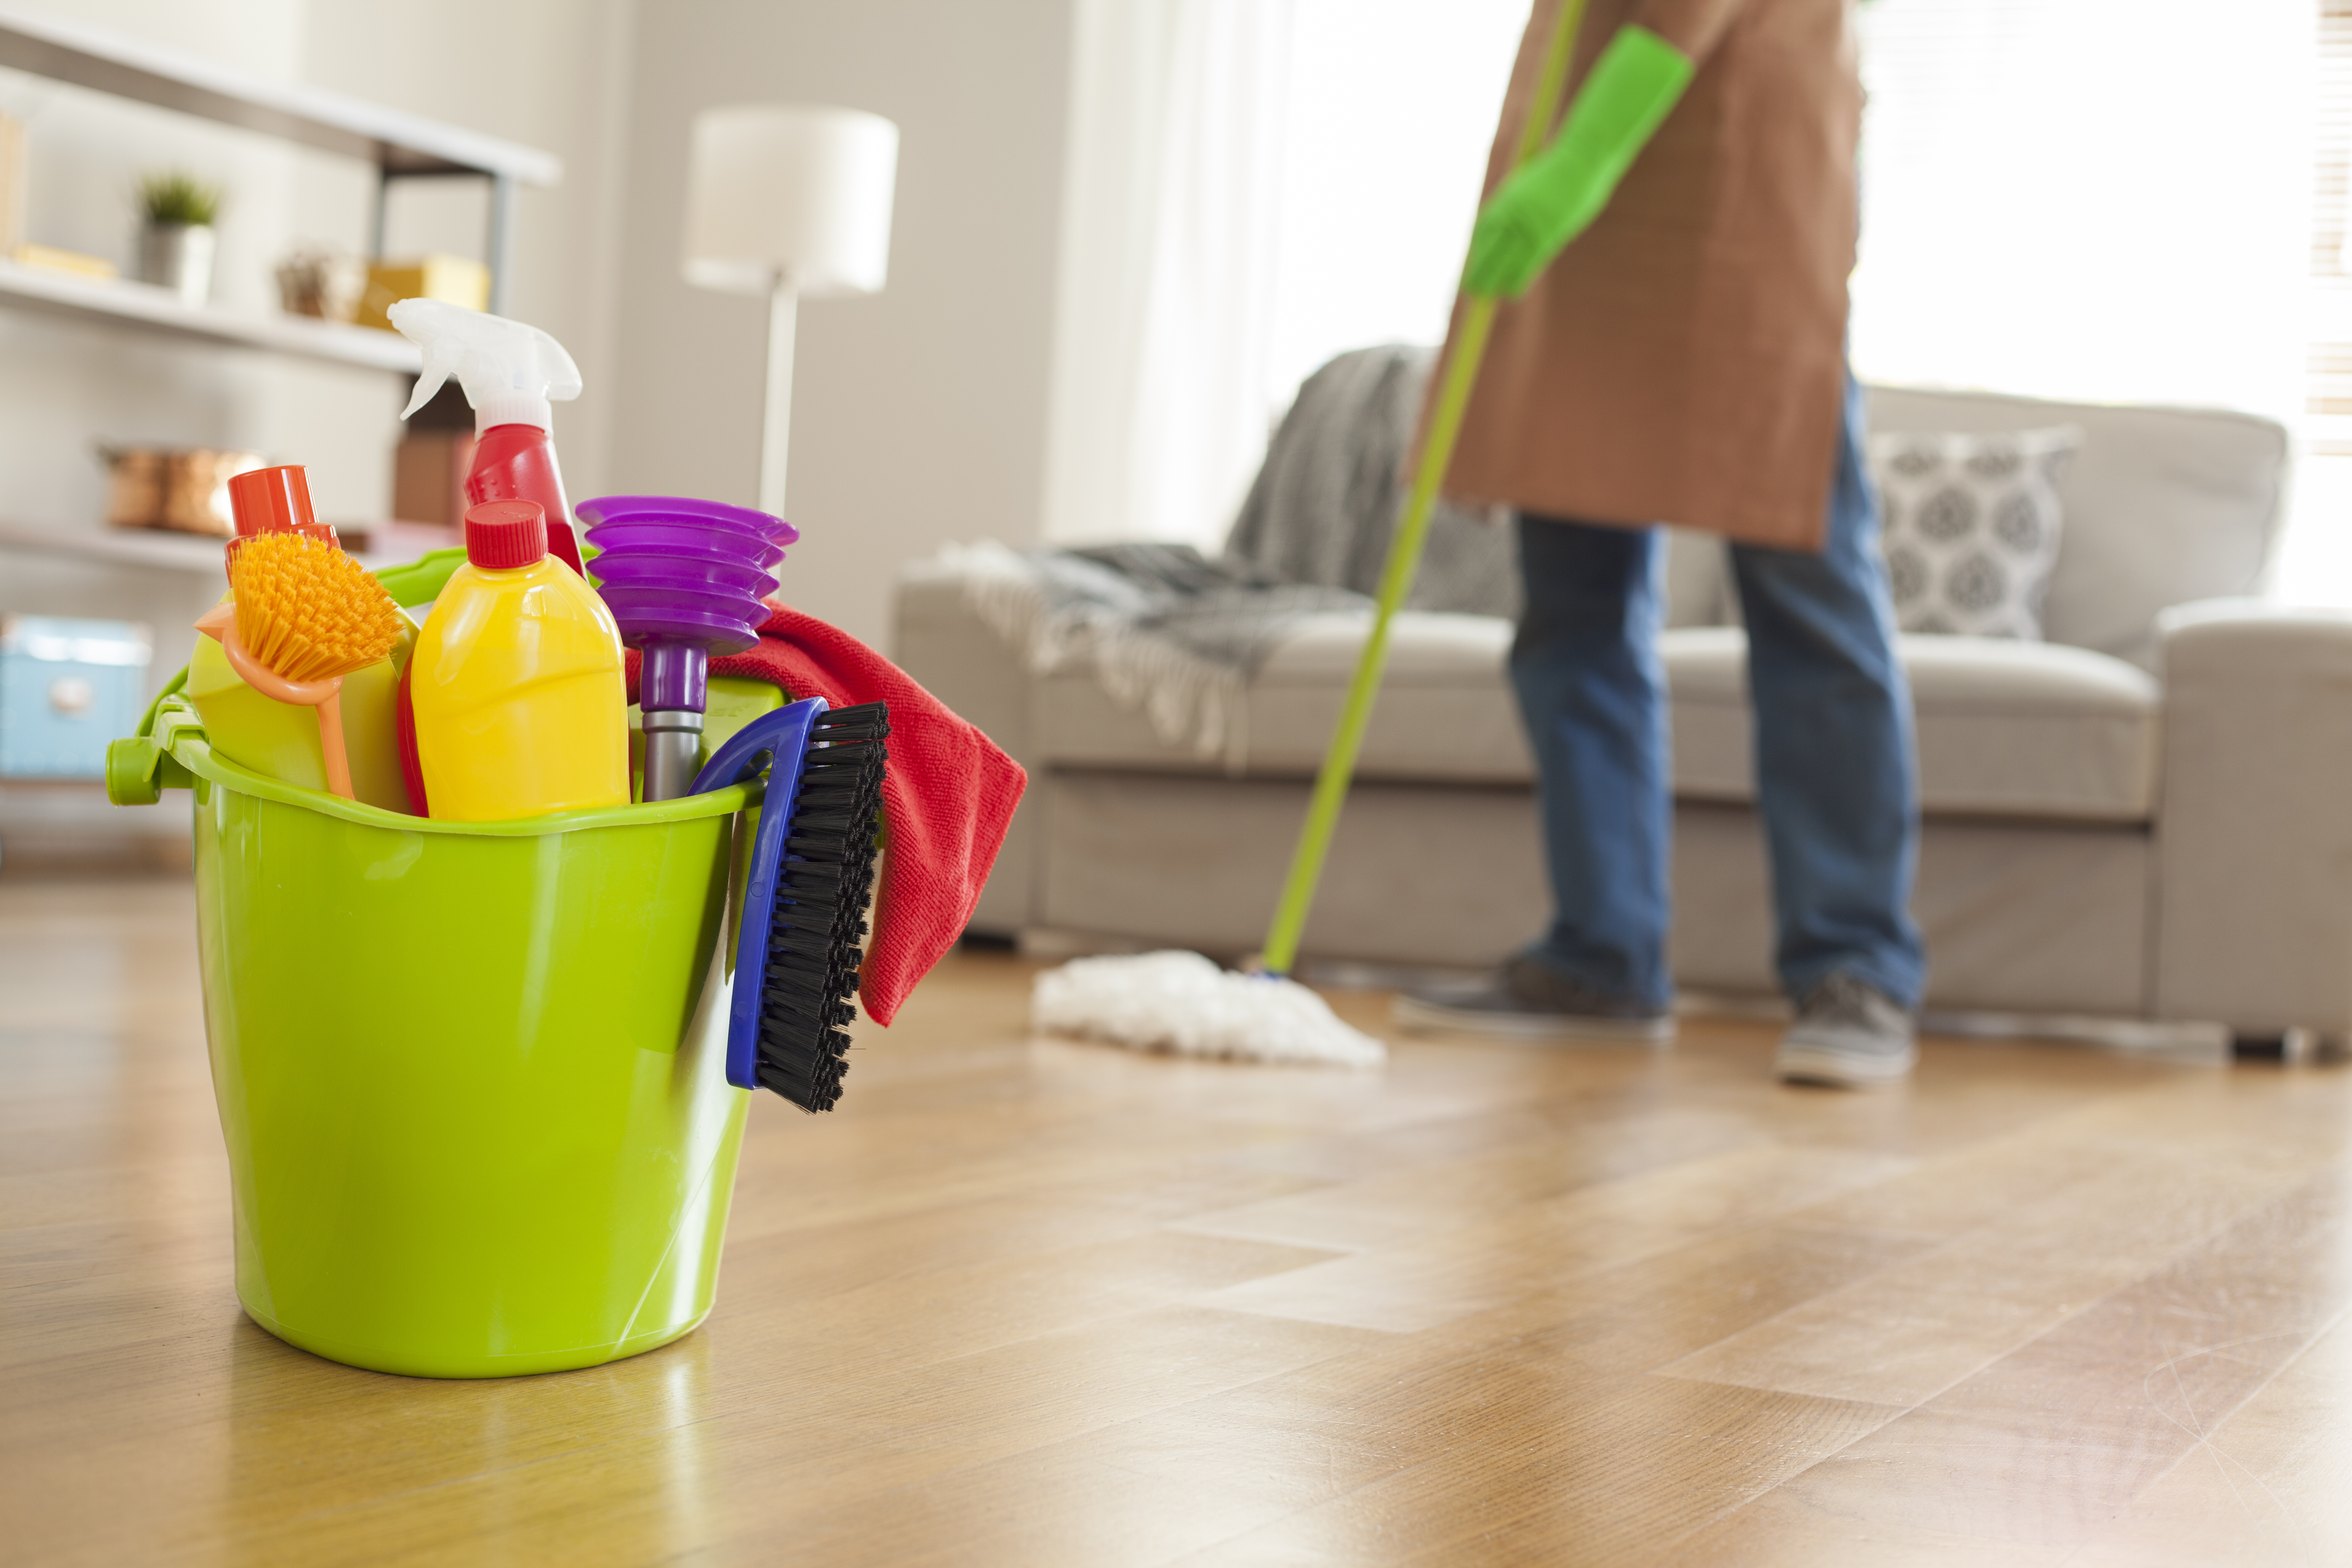 man mopping floor with cleaning supplies in focus